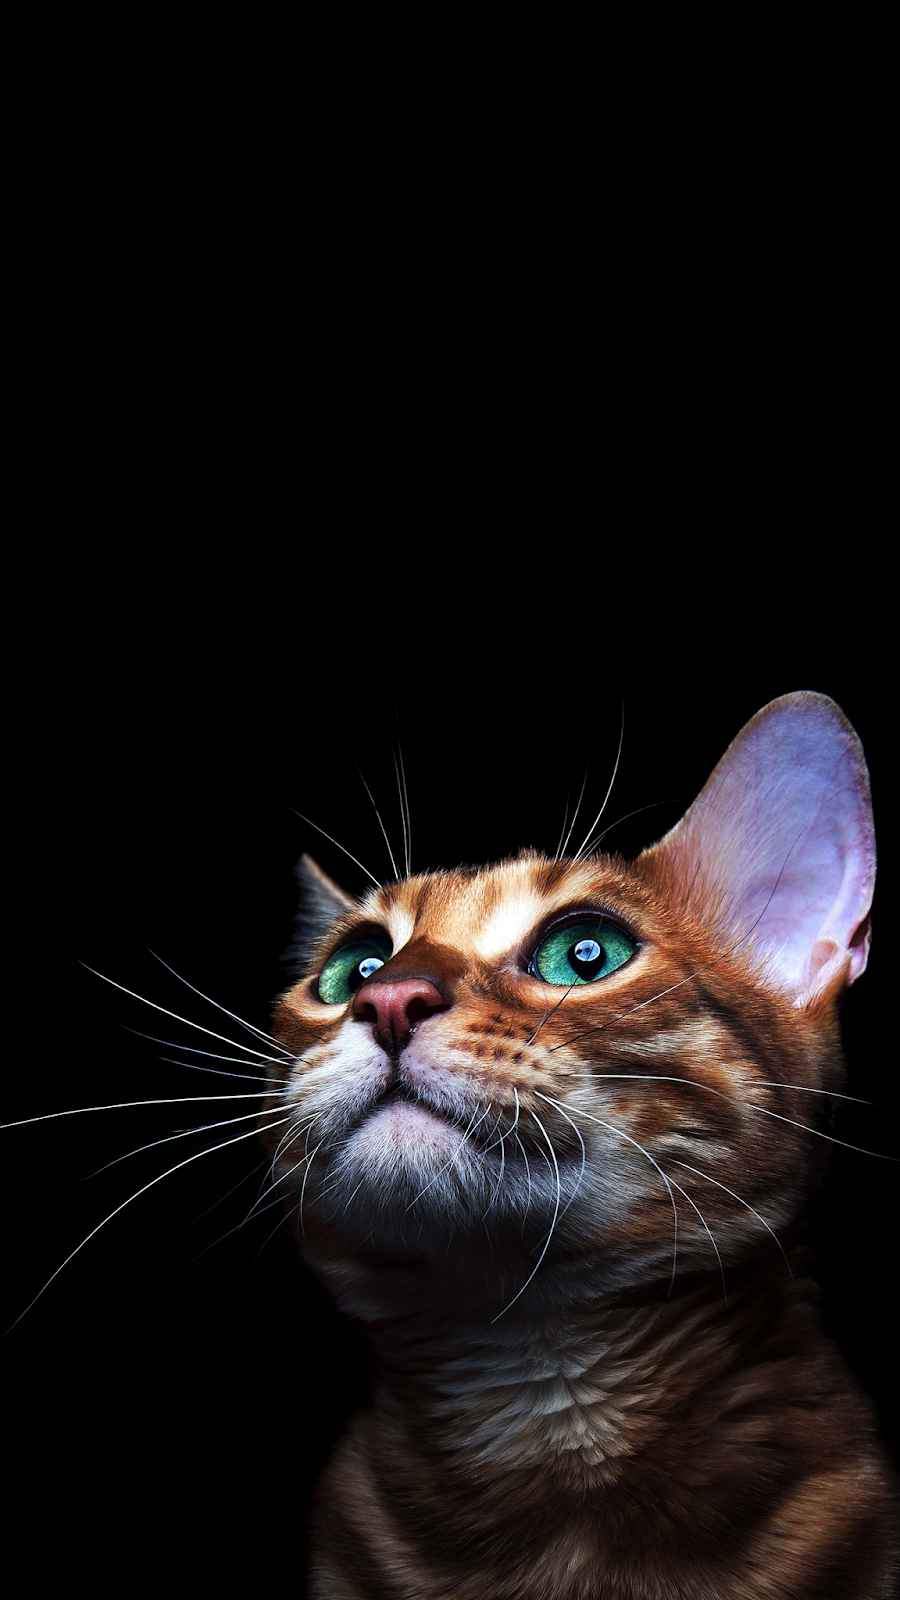 The Best Phone And Desktop Wallpapers Nerd News And Tips For Your Life Check It Out Cat Wallpaper Beautiful Cat Cute Animals